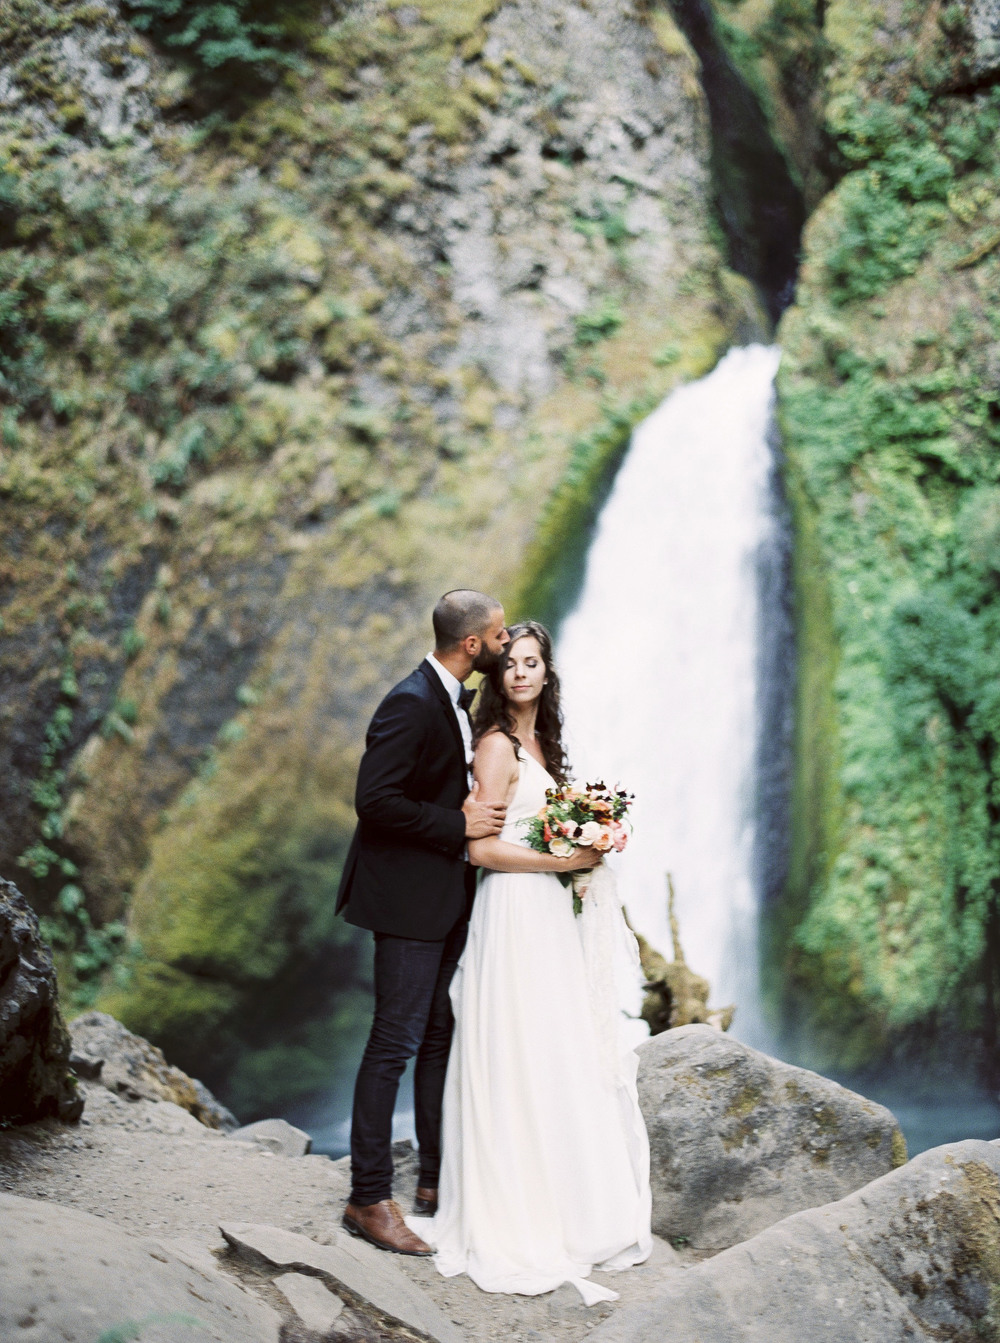 6014_12northwestelopement.JPG